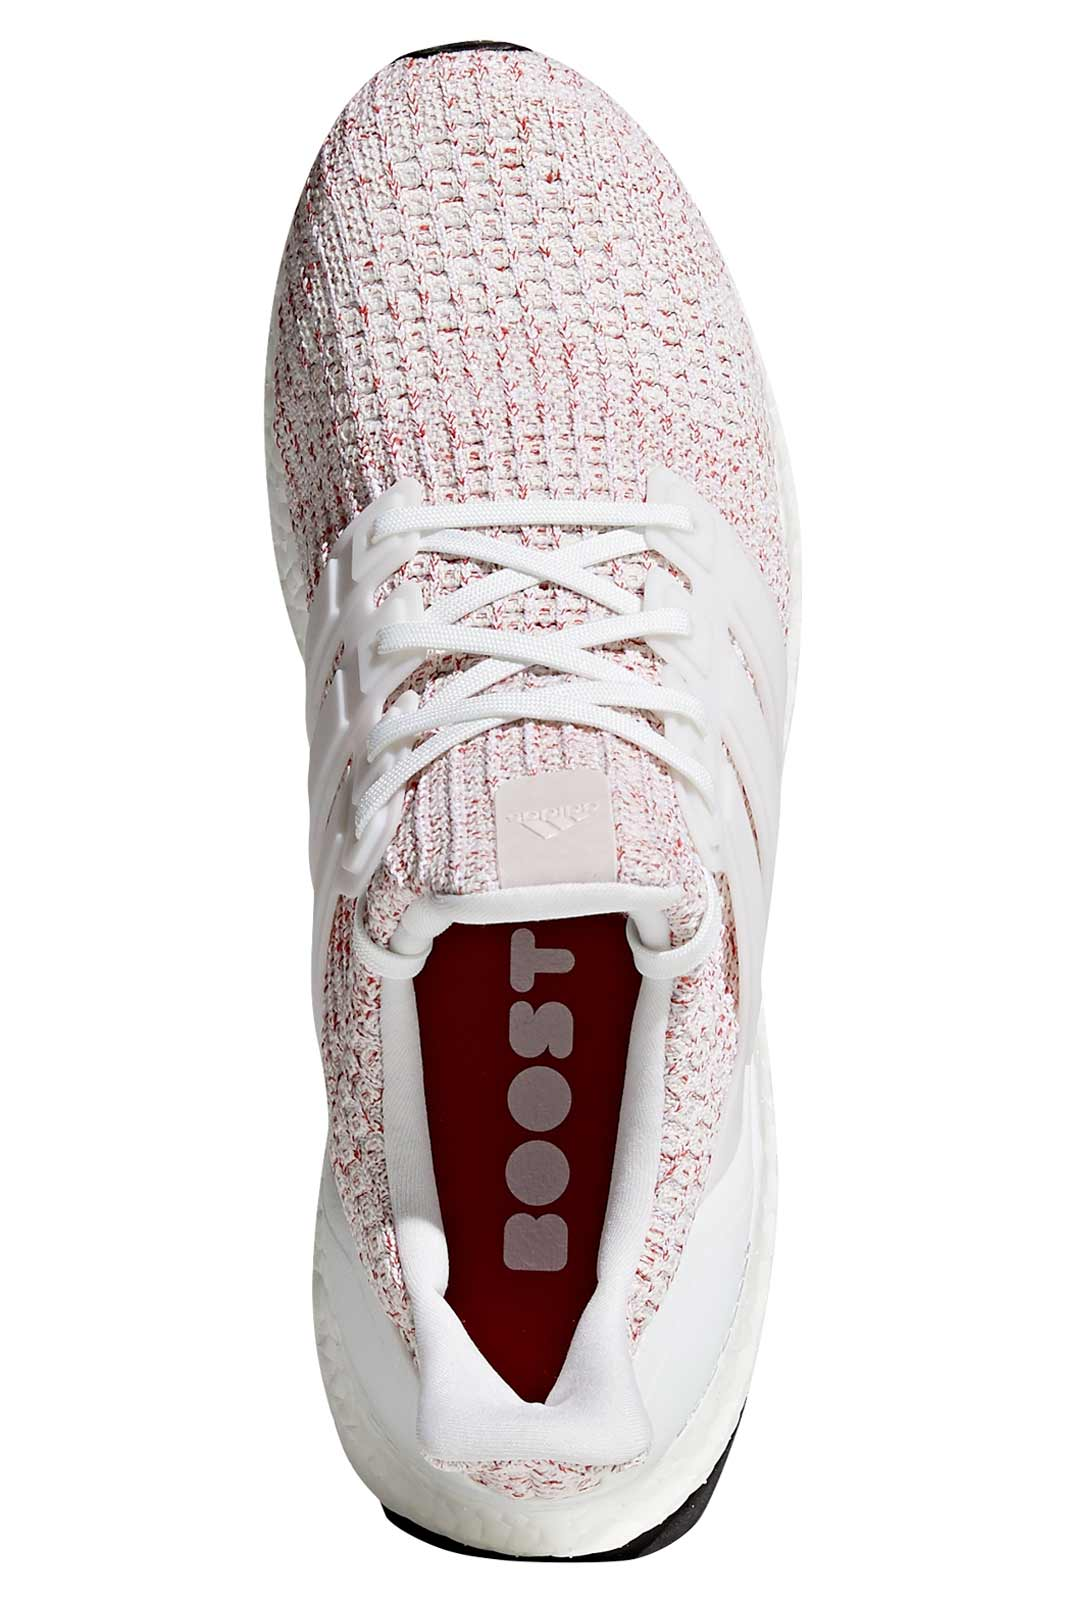 ADIDAS Ultra Boost 4.0 Trainers - Candy Cane - Men's image 2 - The Sports Edit